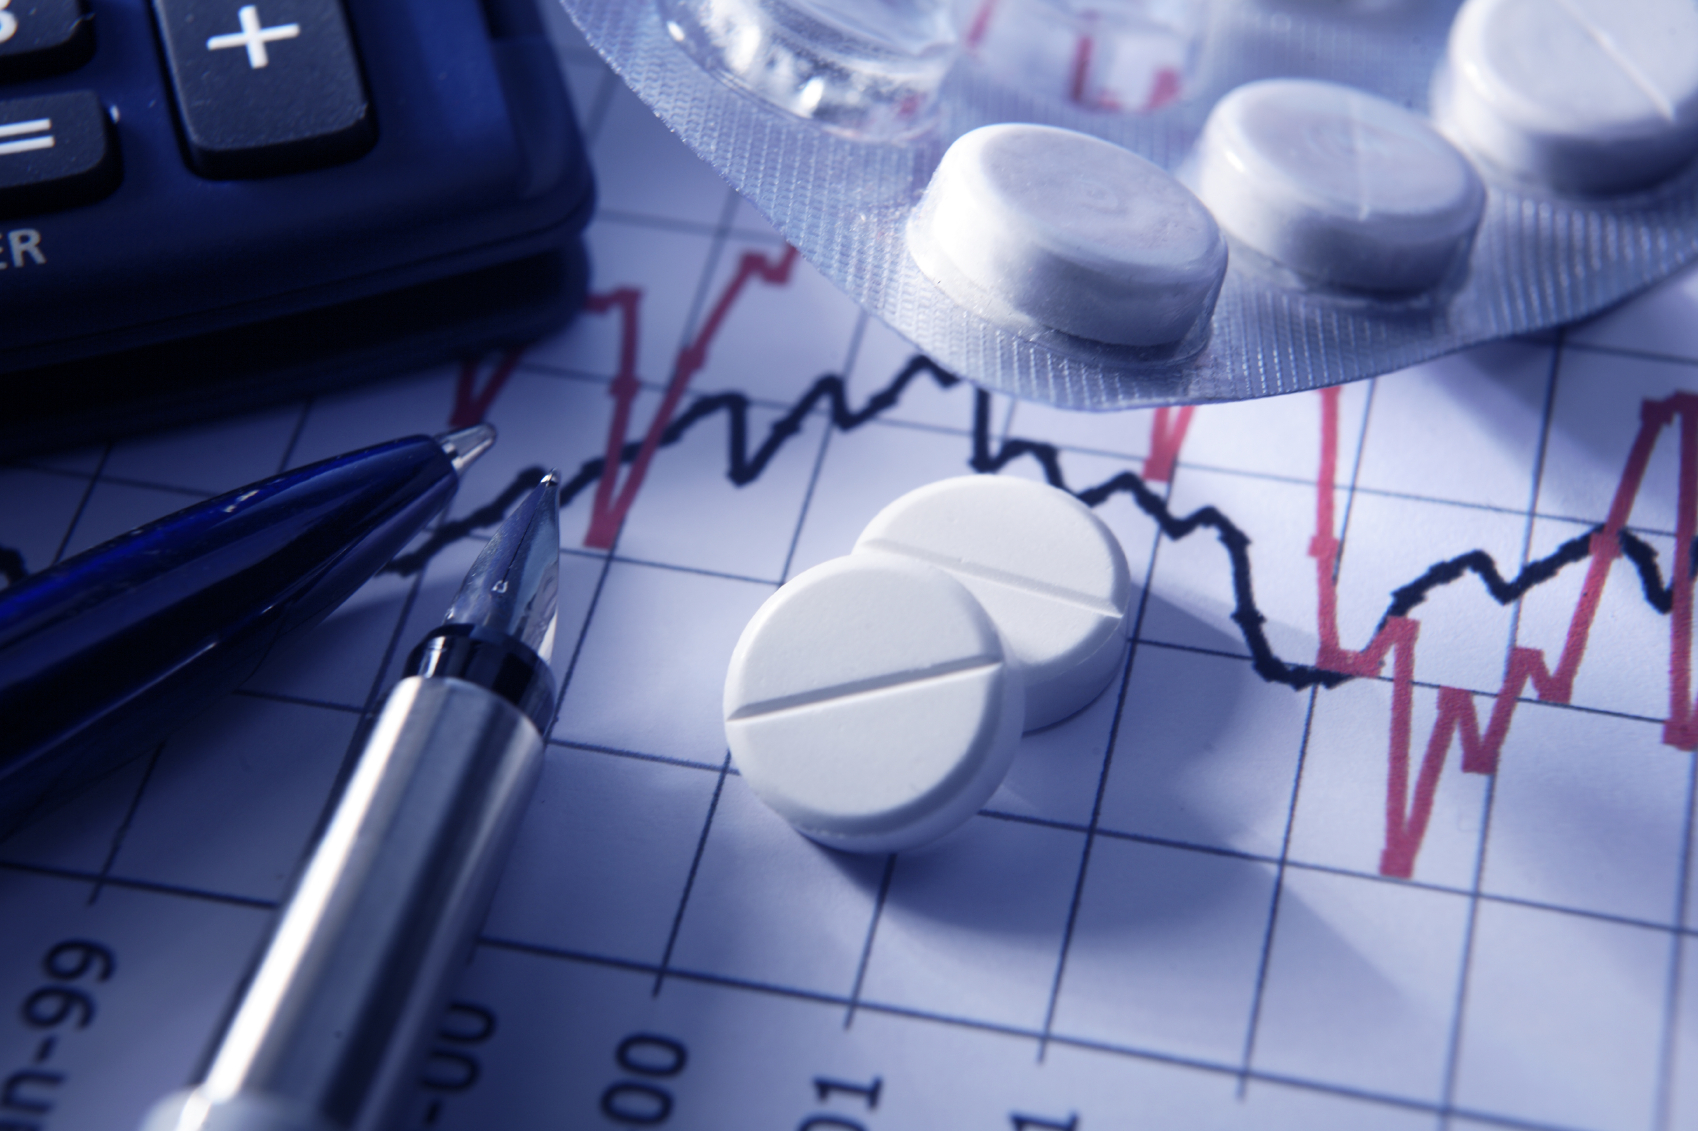 istock_finance_painkillers_on_stock_chart